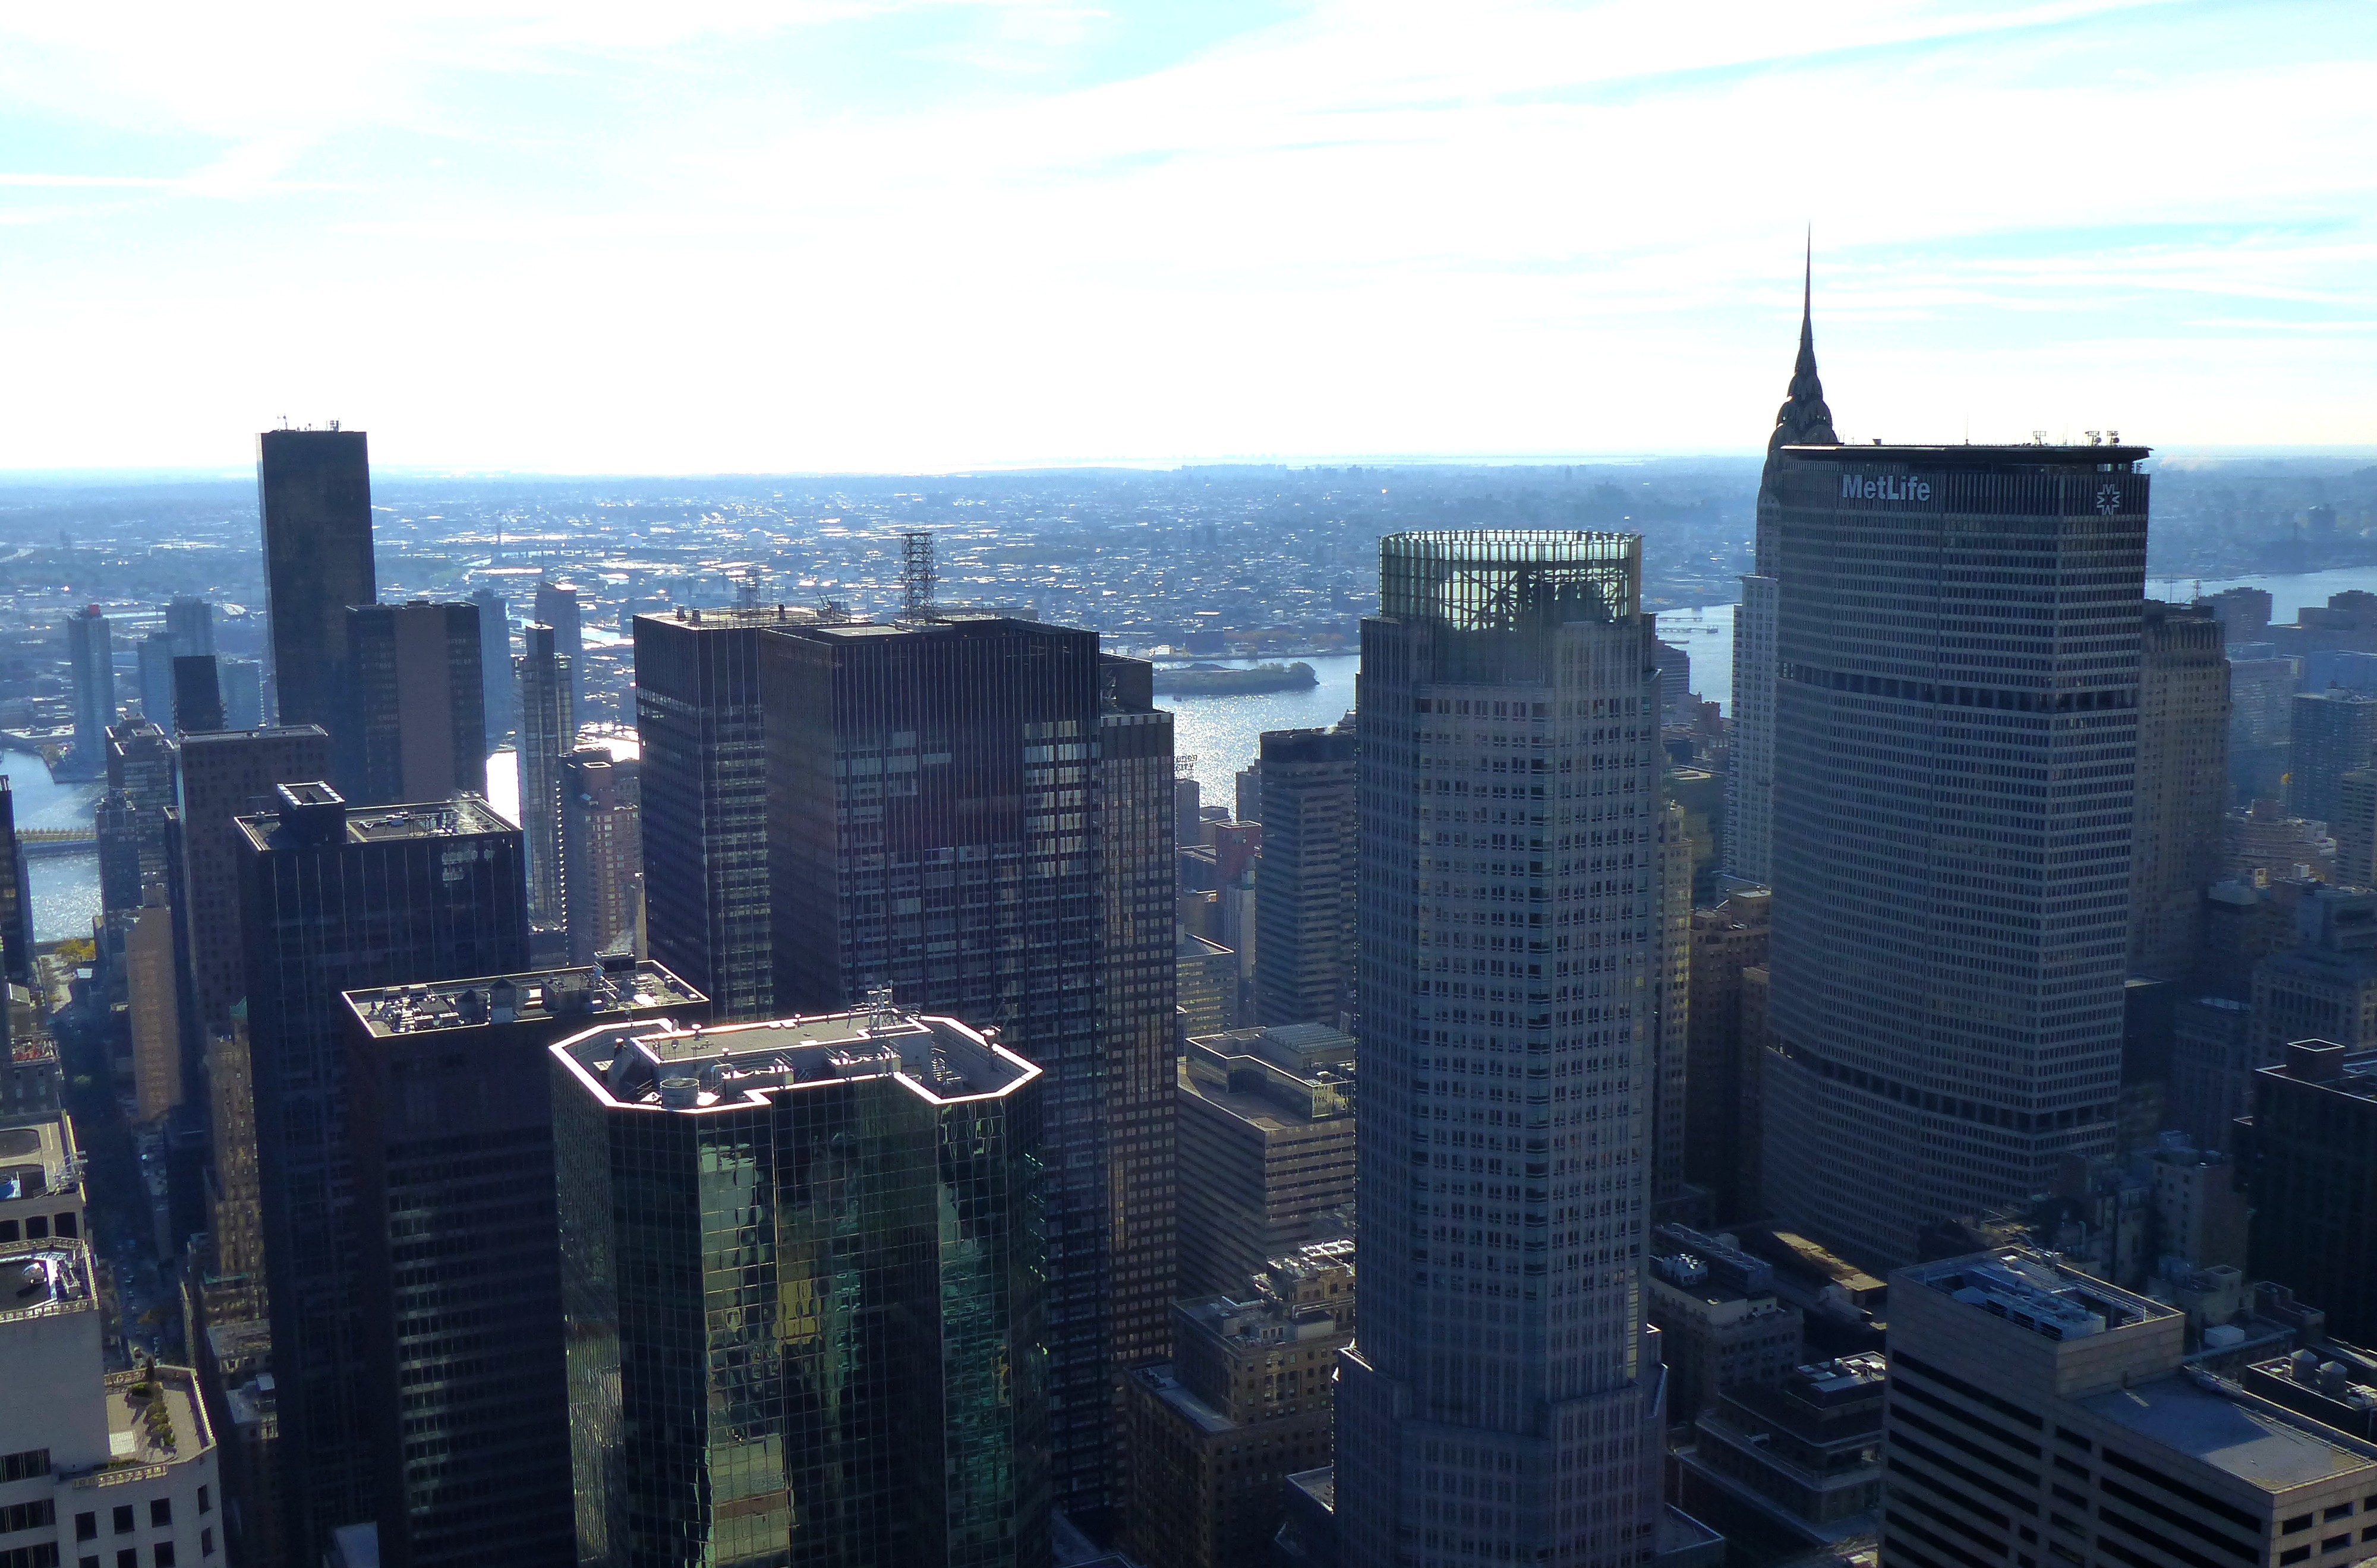 Visiting the practice (samantha) NYC_-_Top_of_the_Rock_-_view_of_Midtown_North_Central_%E2%80%93_East_River_-_Brooklyn_-_panoramio